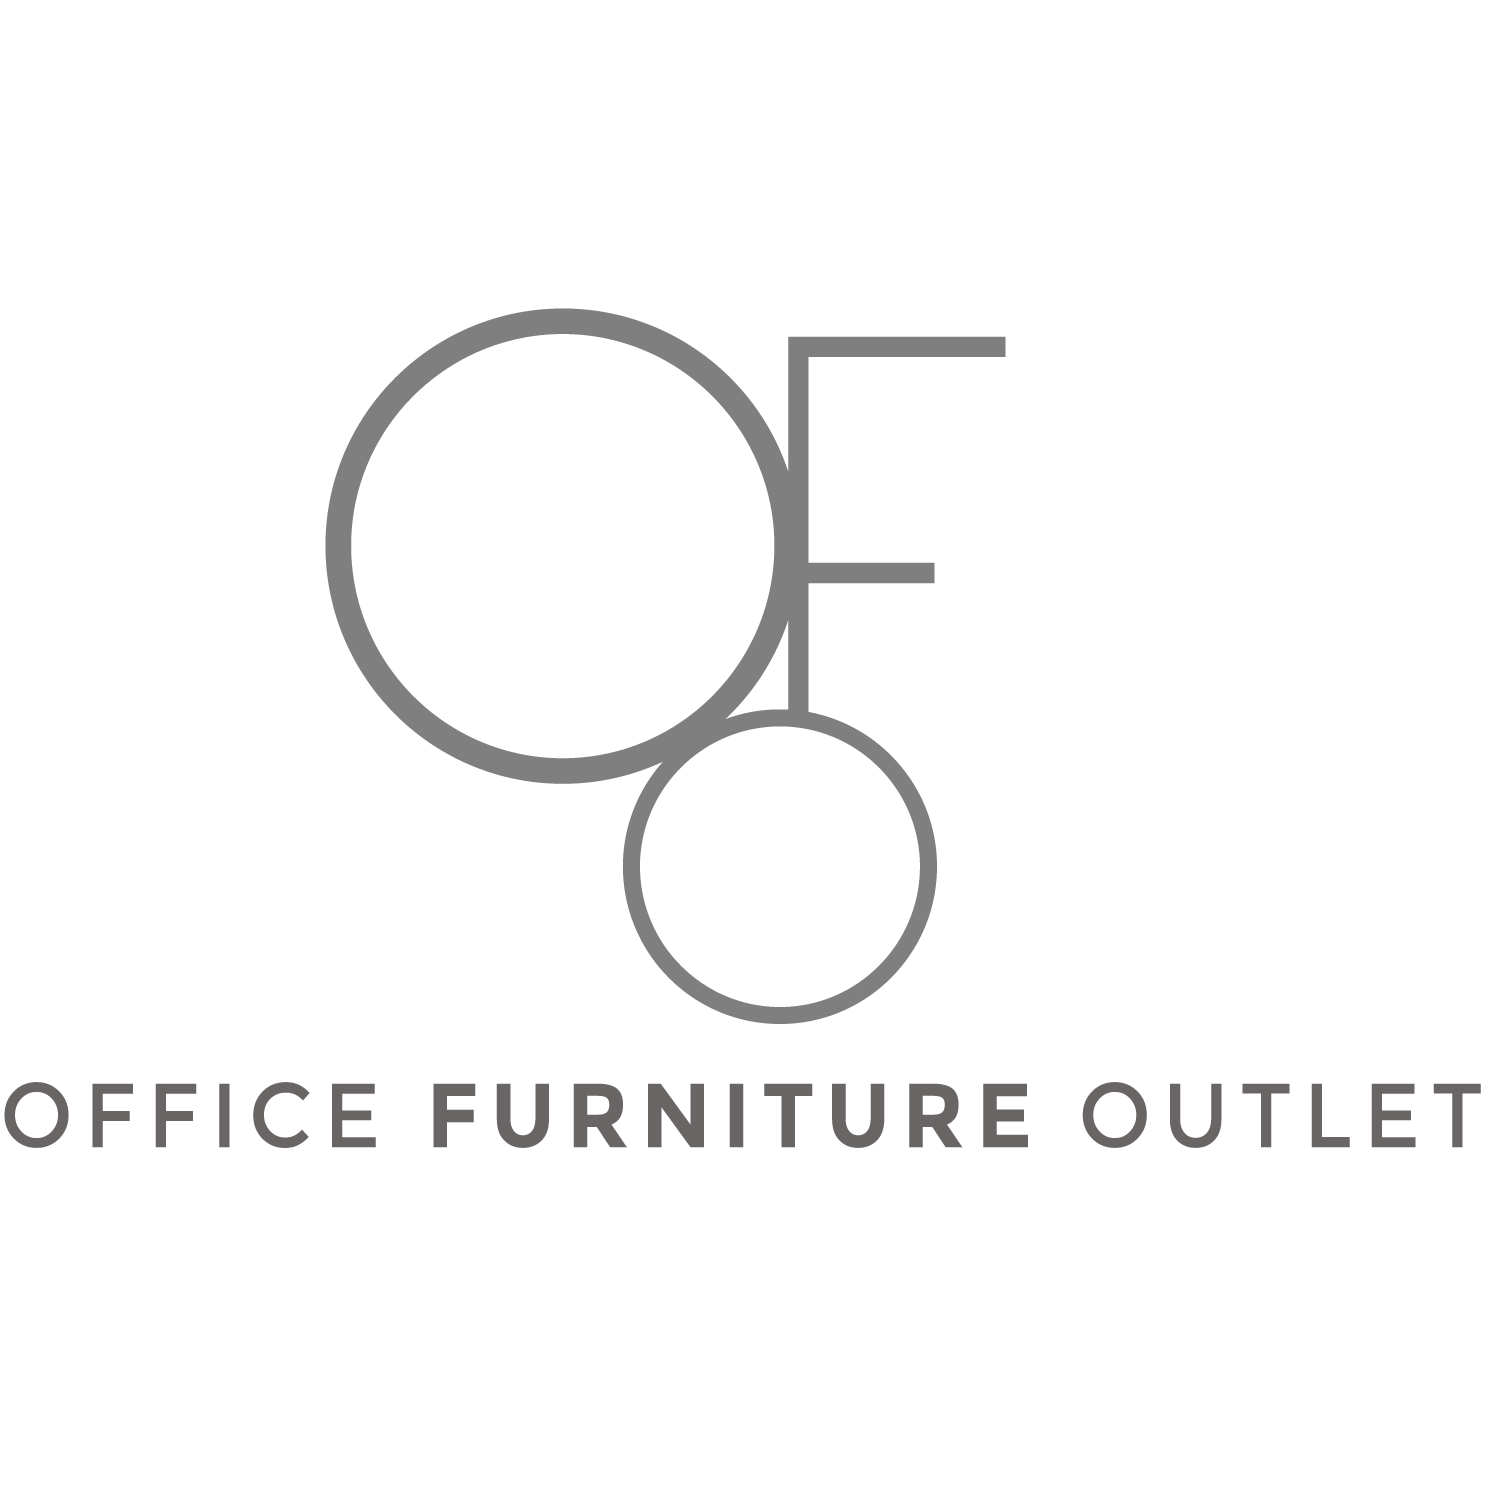 Office Furniture Outlet Inc.